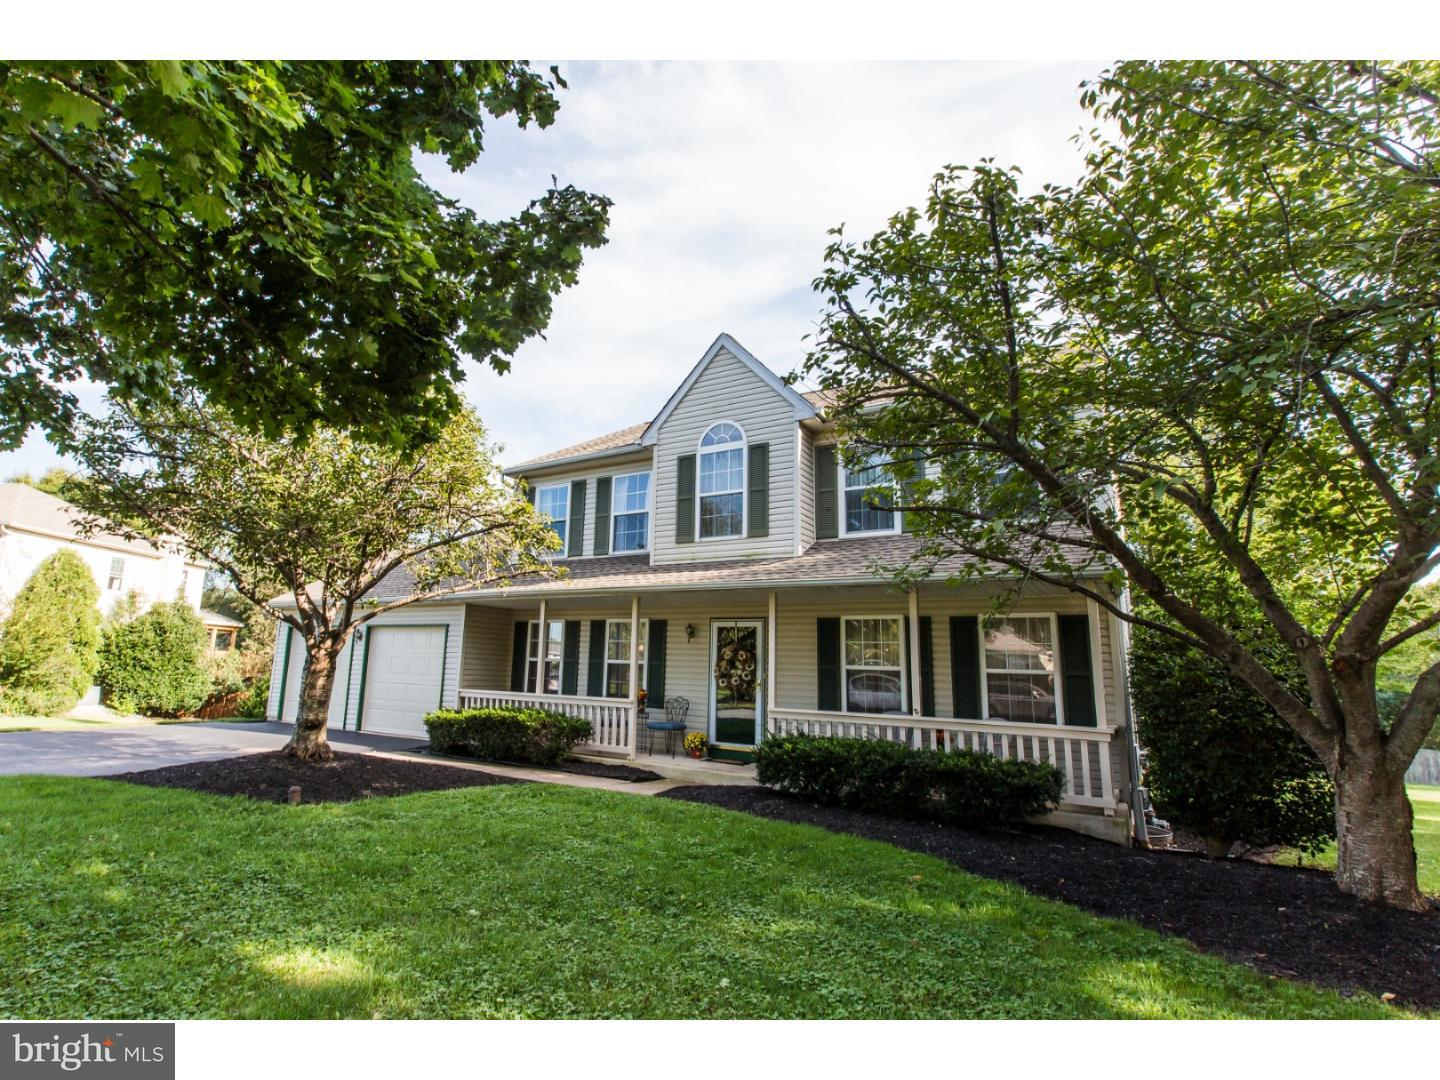 589 WEIKEL RD, LANSDALE - Listed at $439,900, LANSDALE